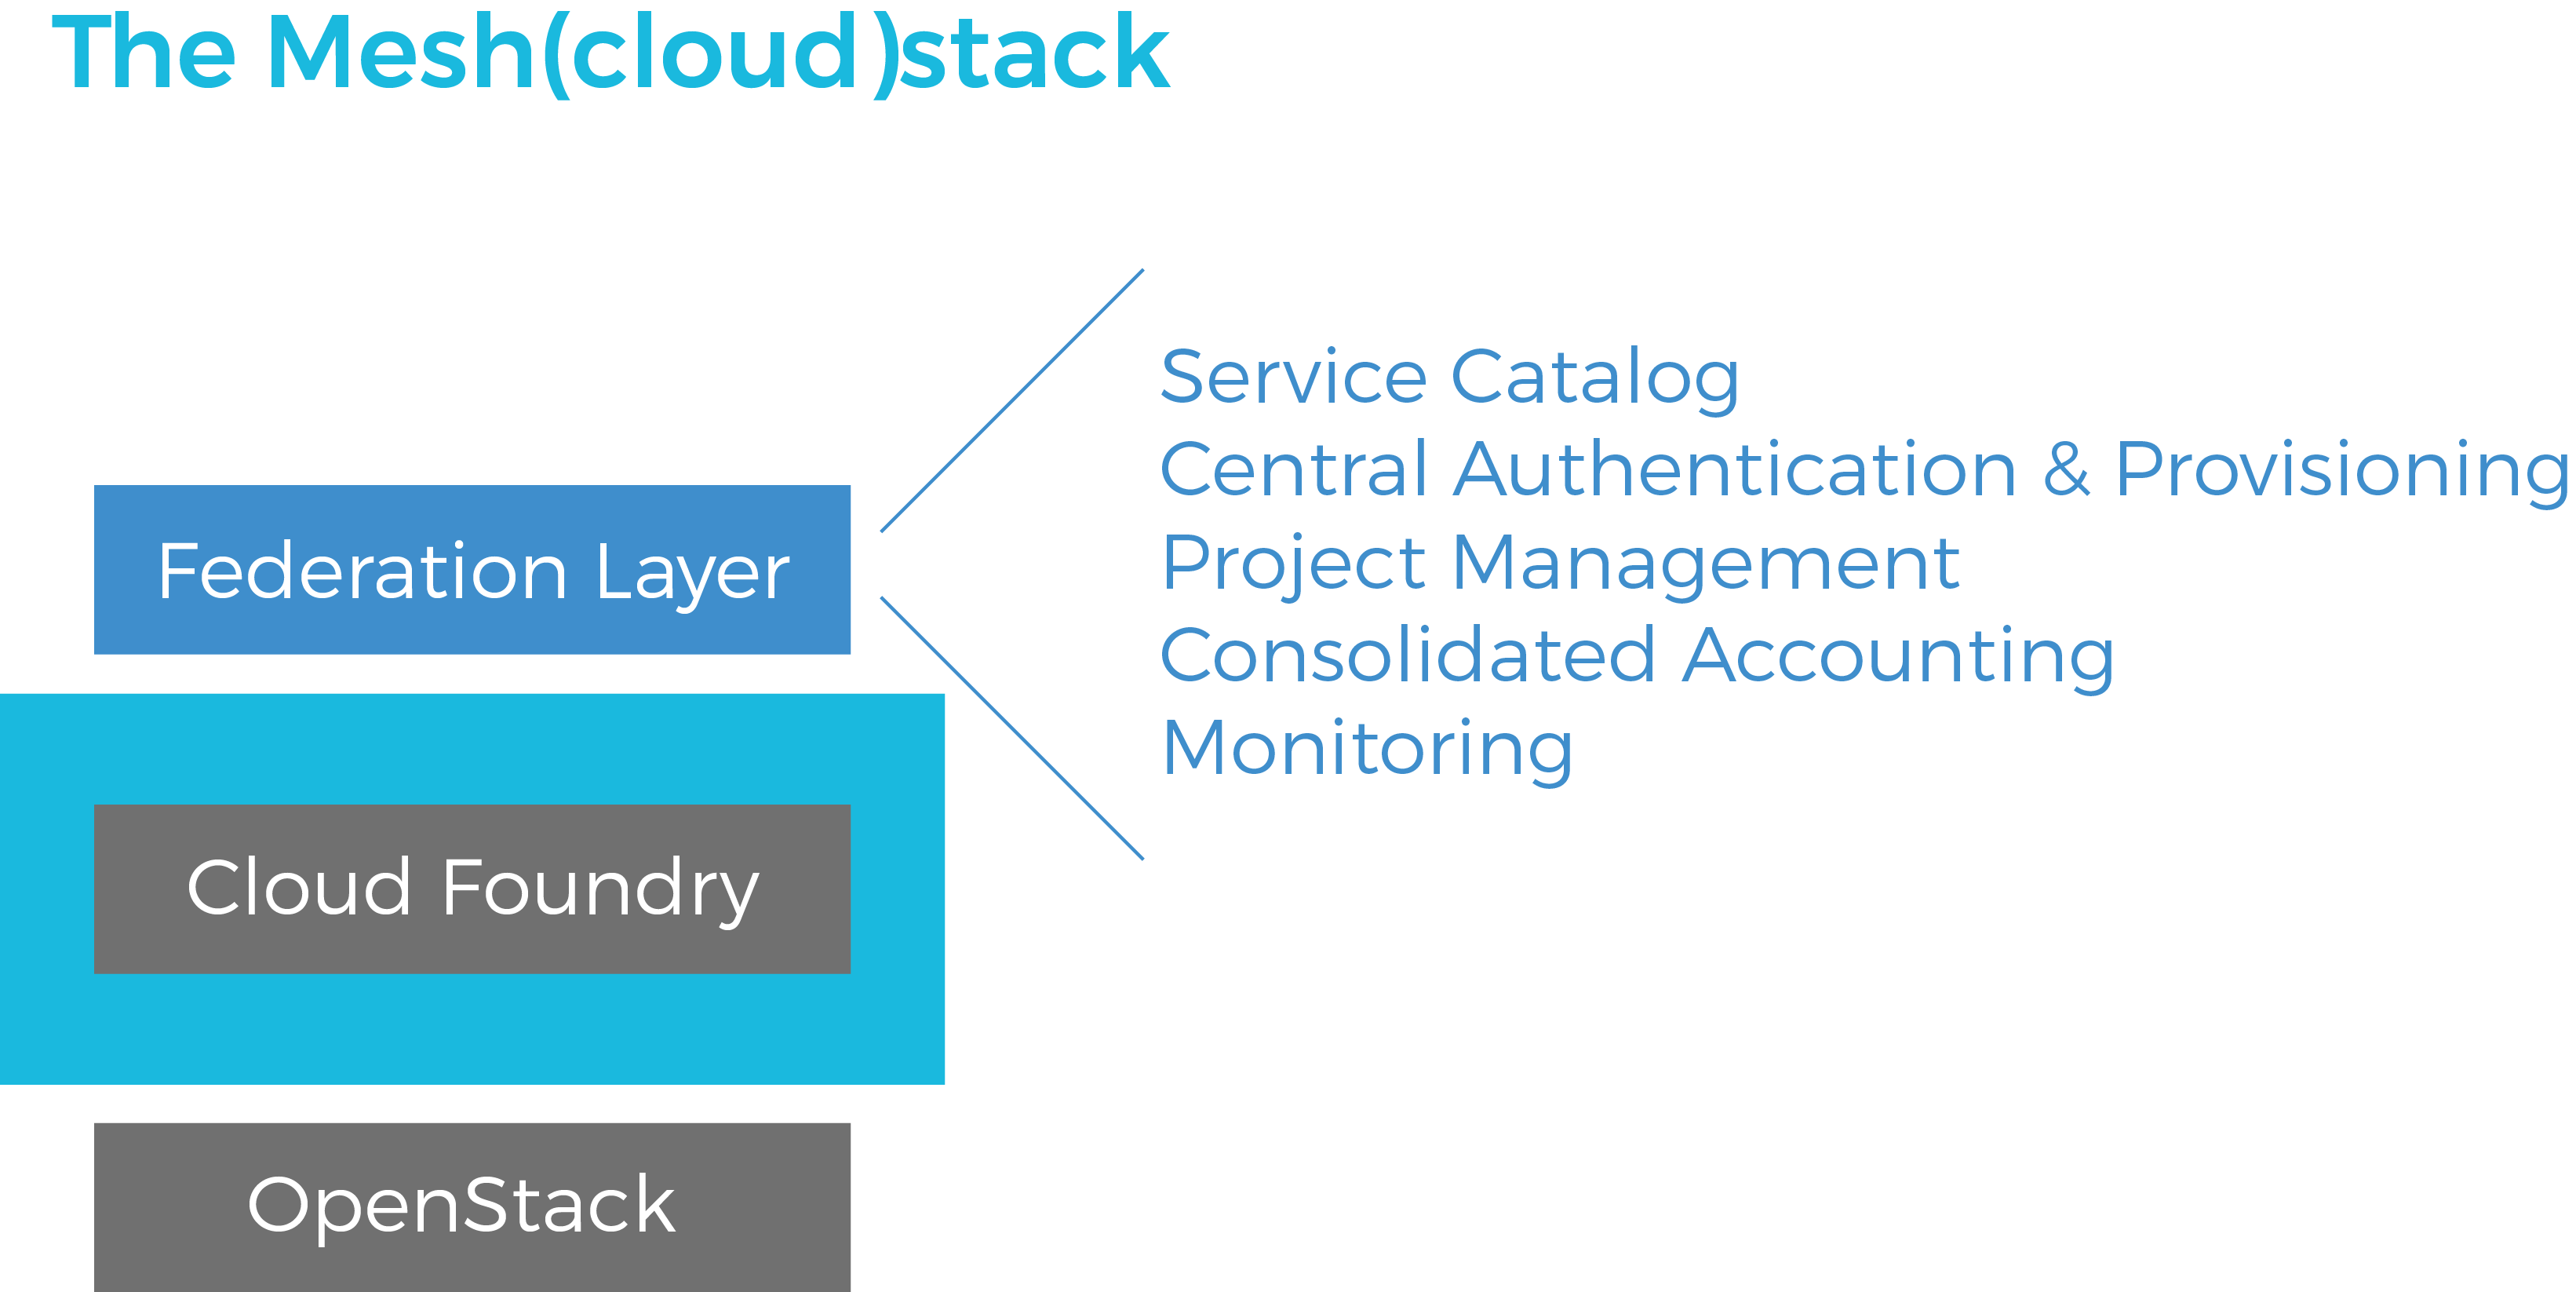 Our cloud solution is based on OpenStack and Cloud Foundry